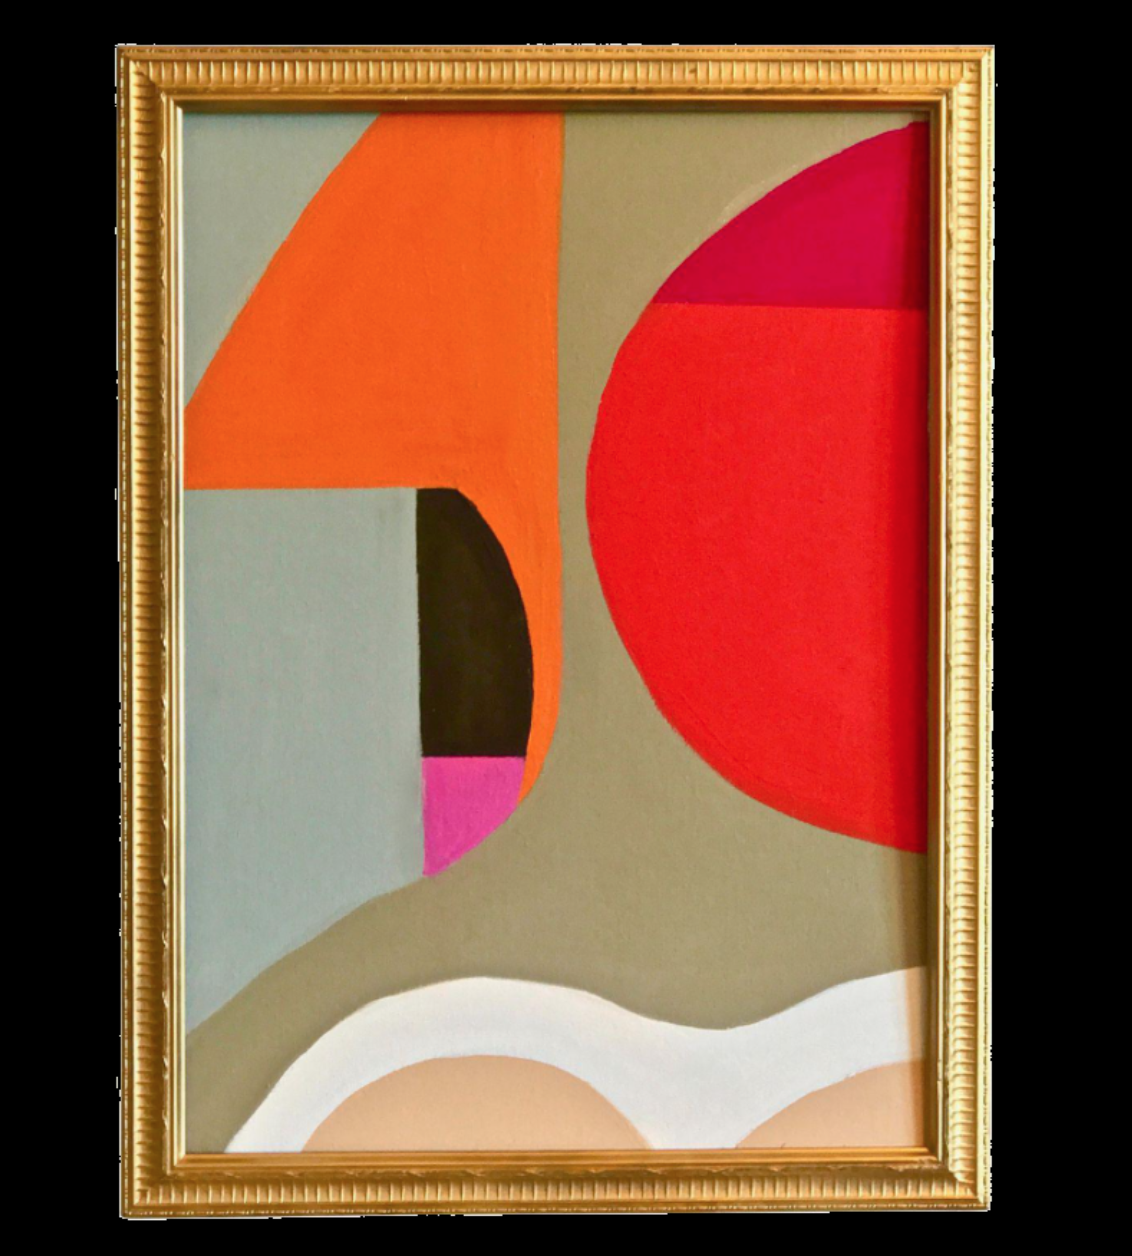 Title: Mixing shapes